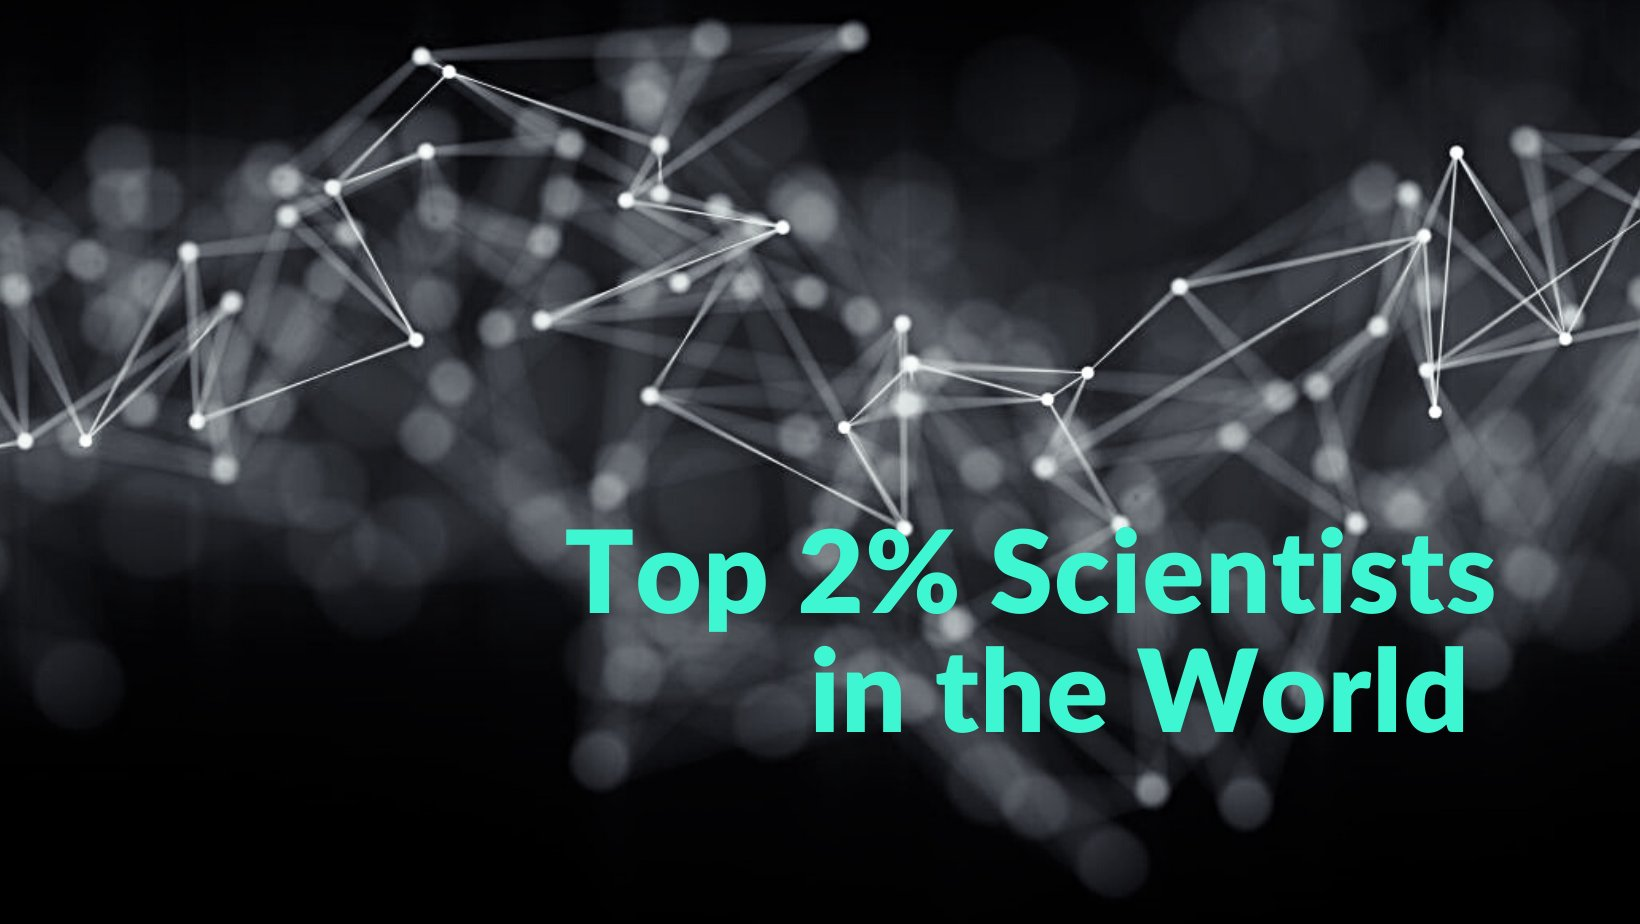 Seven CB faculty members listed the world's top 2% scientists